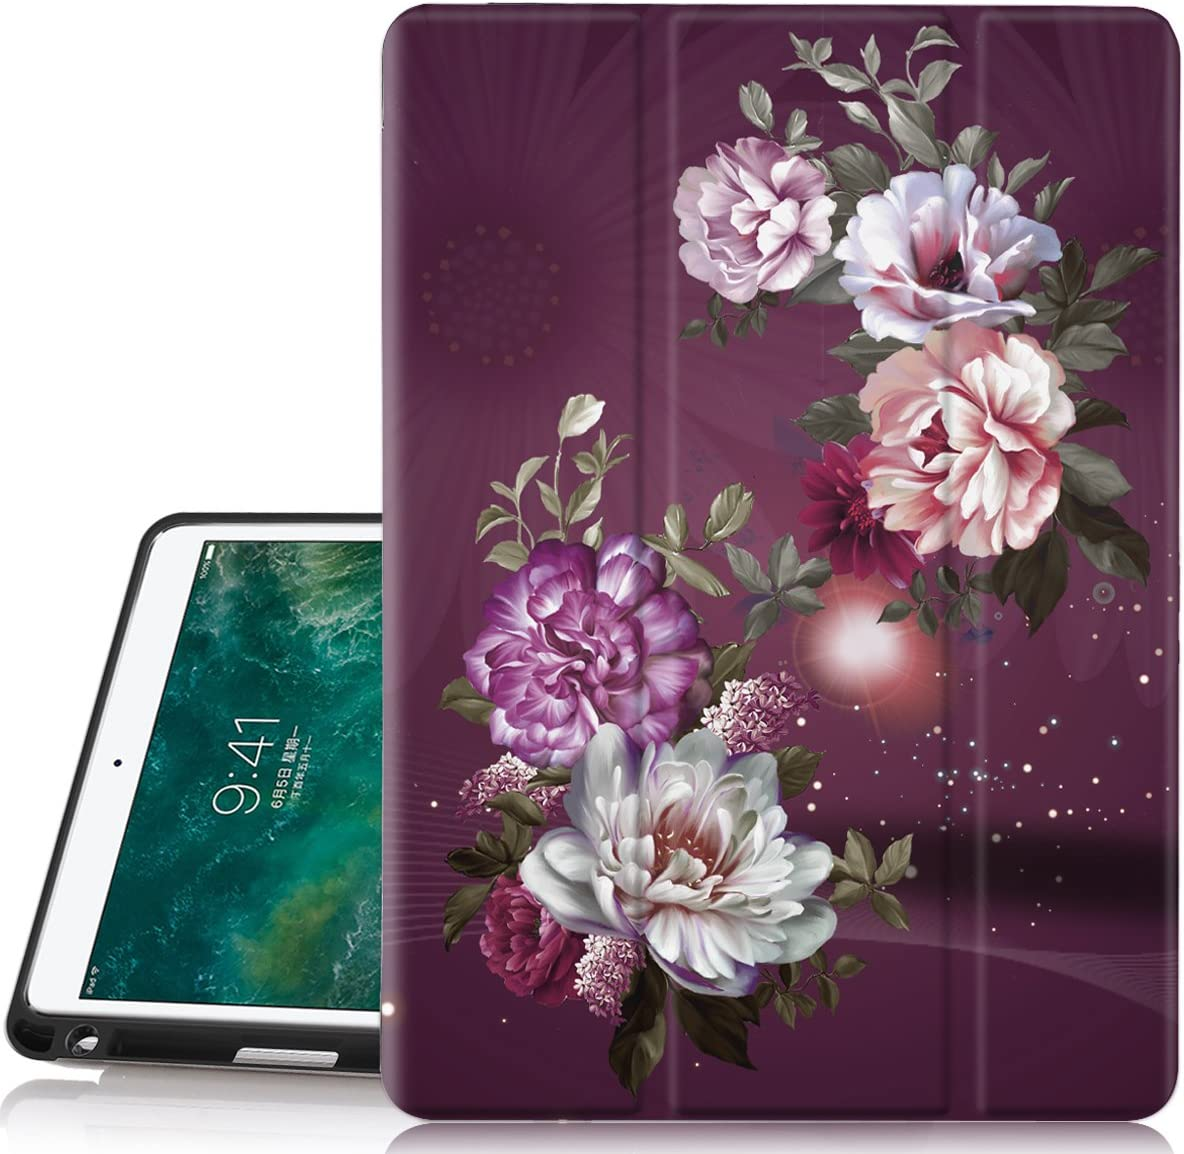 Hocase iPad Air 3rd Gen/iPad Pro 10.5 Case, Trifold Smart Case with Pencil Holder, Unique Pattern Design, Auto Sleep/Wake, Soft Back Cover for iPad A1701/A1709/A2152/A2123/A2153 - Burgundy Flowers